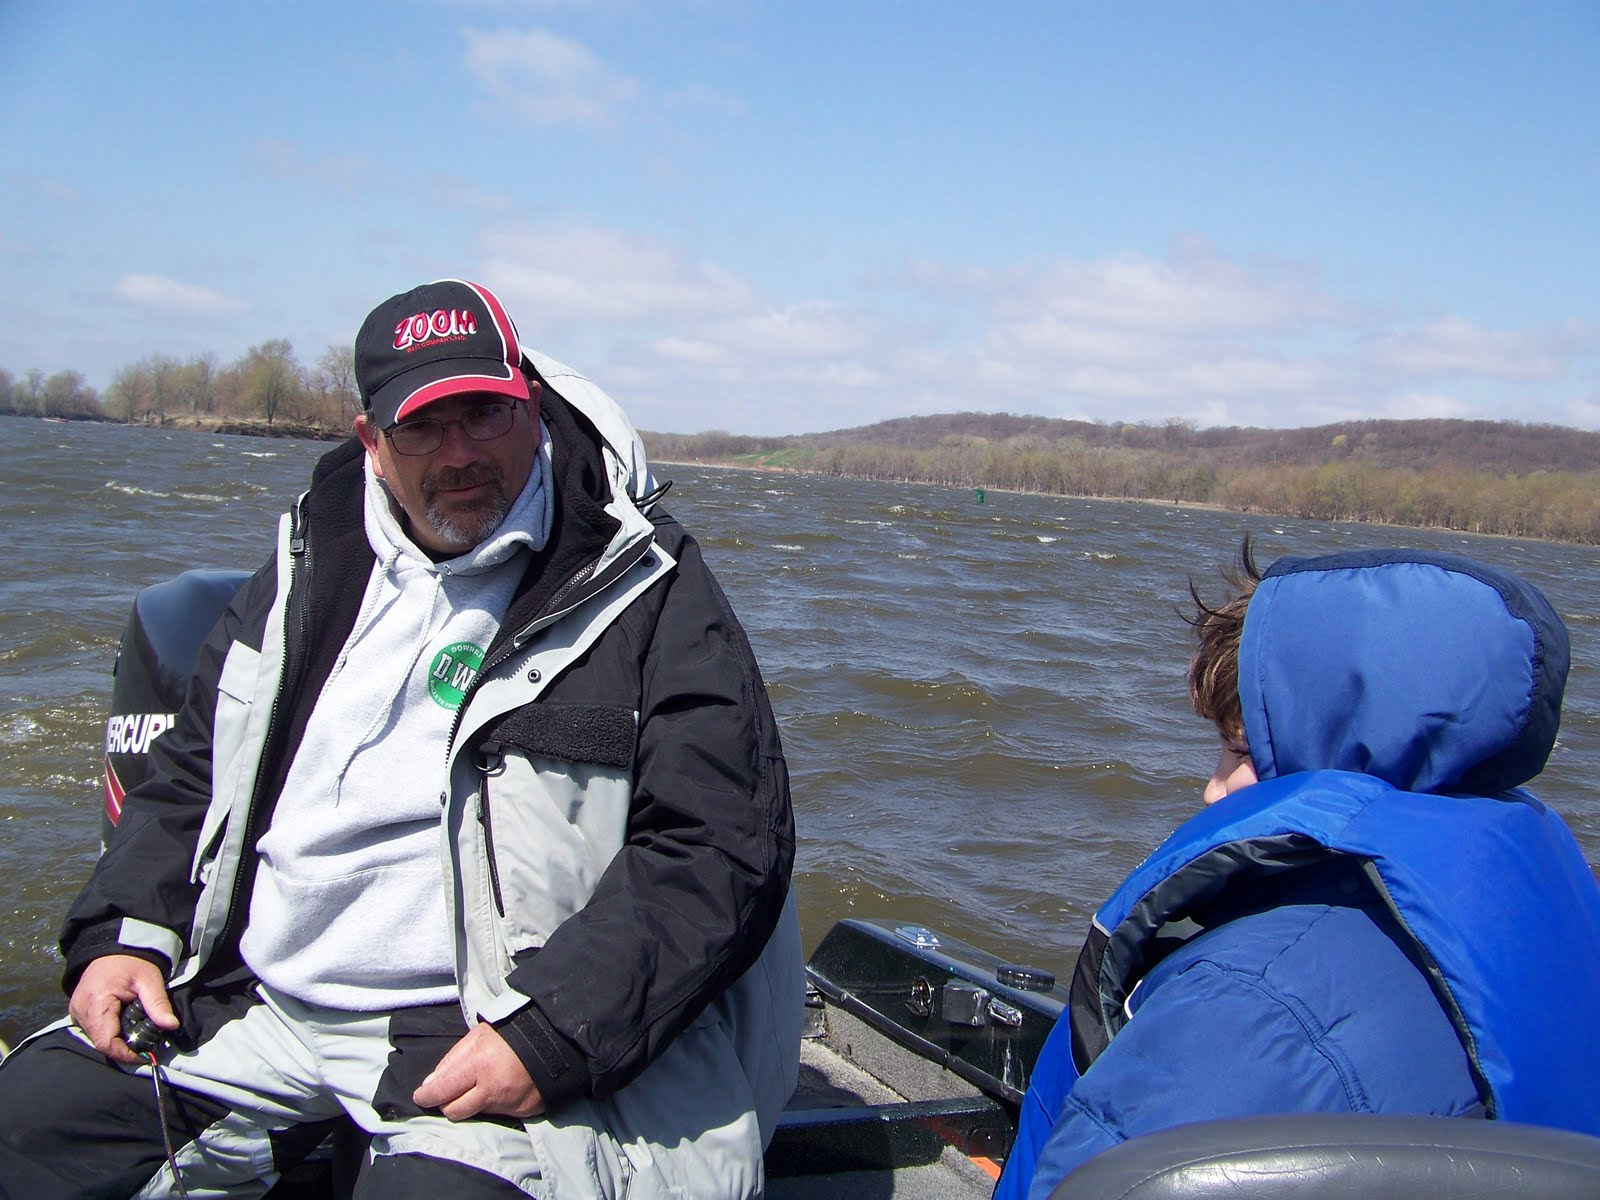 Jay angel 39 s fishing page fishing on the illinois river for Fishing with john